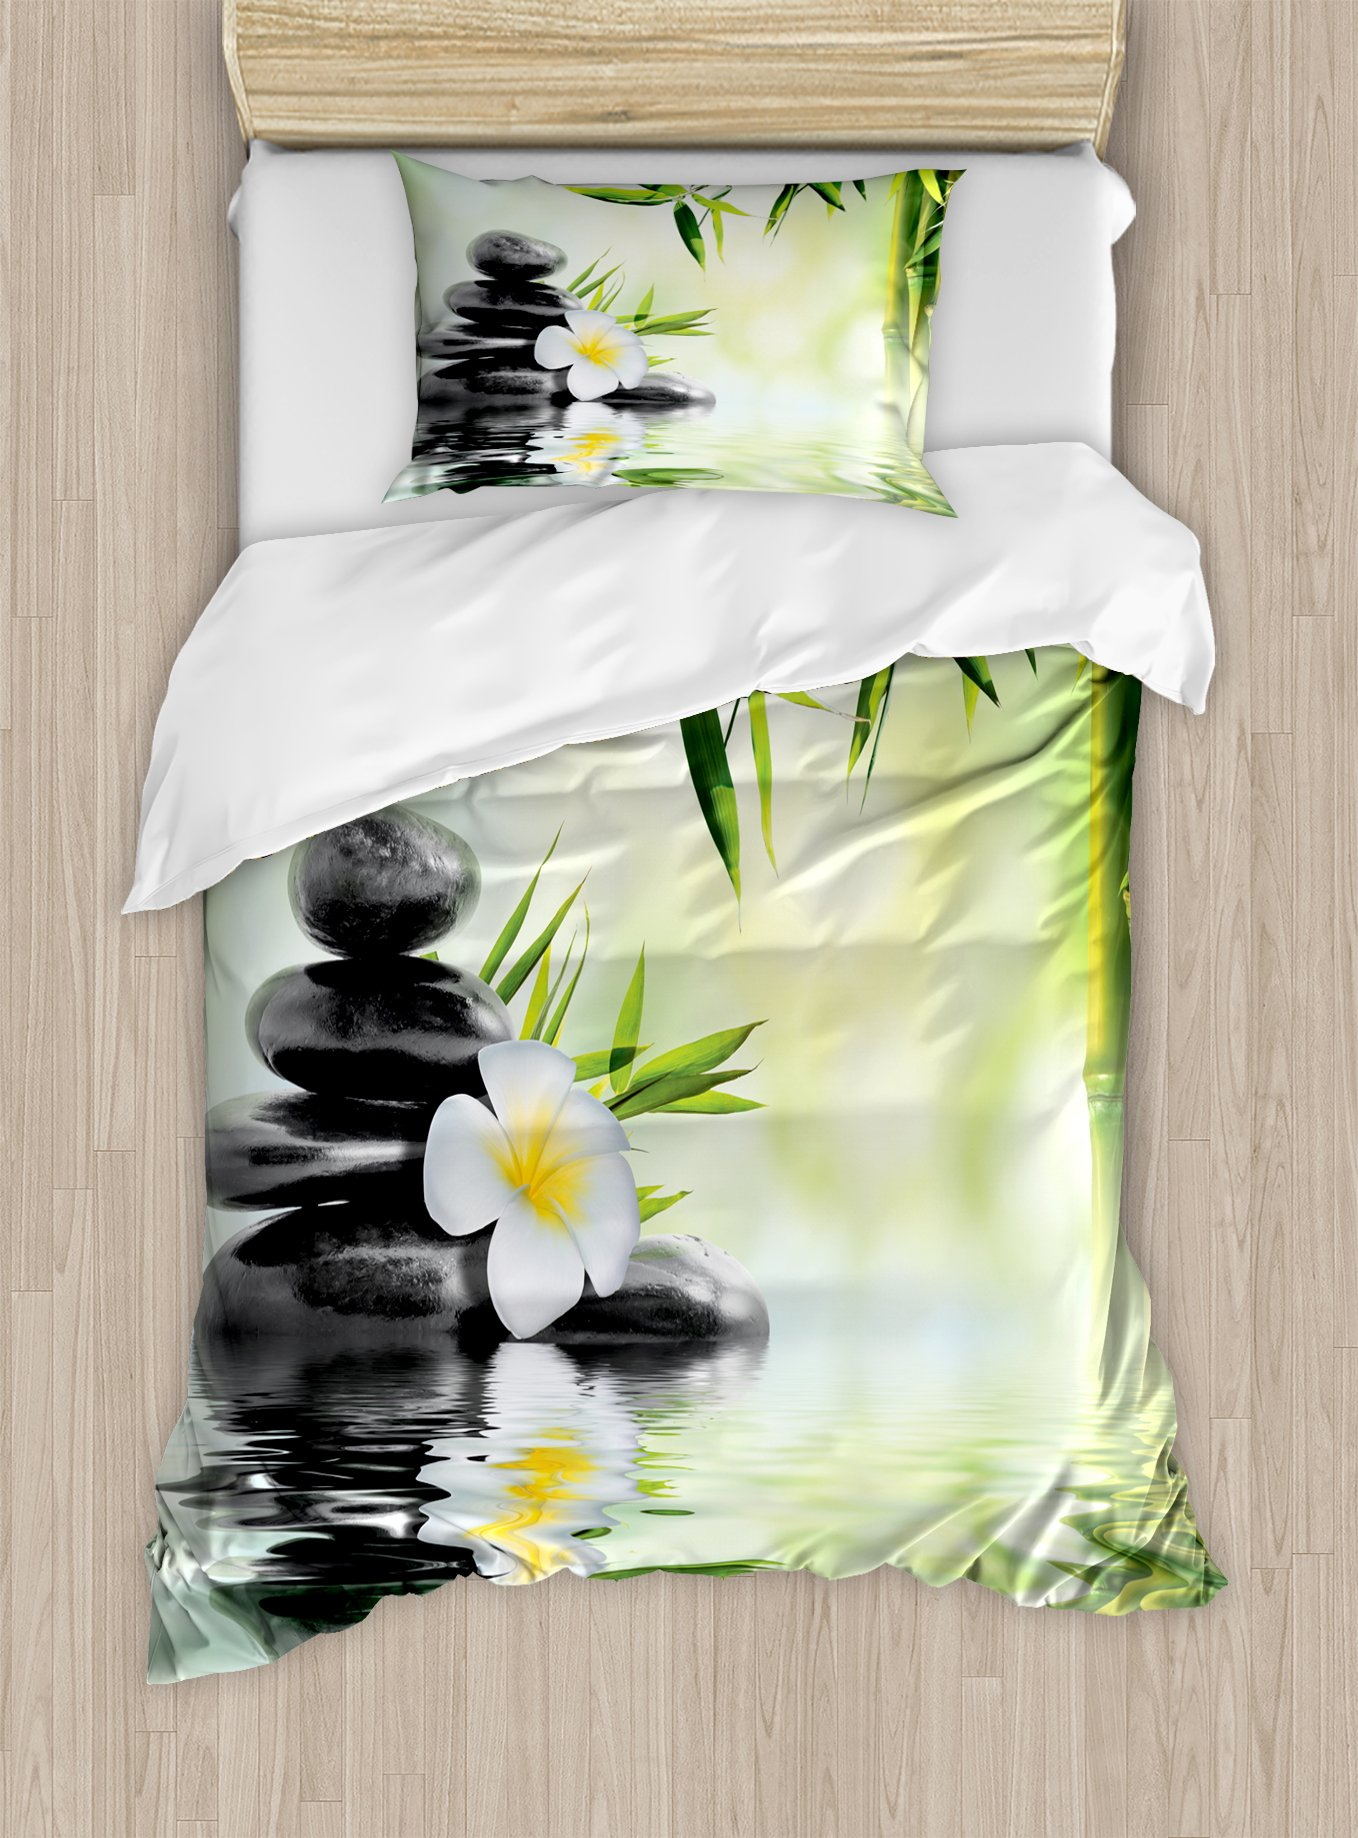 Ambesonne Spa Duvet Cover Set Twin Size, Garden with Frangipani Bamboo Japanese Relaxation Resting Travel, Decorative 2 Piece Bedding Set with 1 Pillow Sham, Pale Green Charcoal Grey Yellow